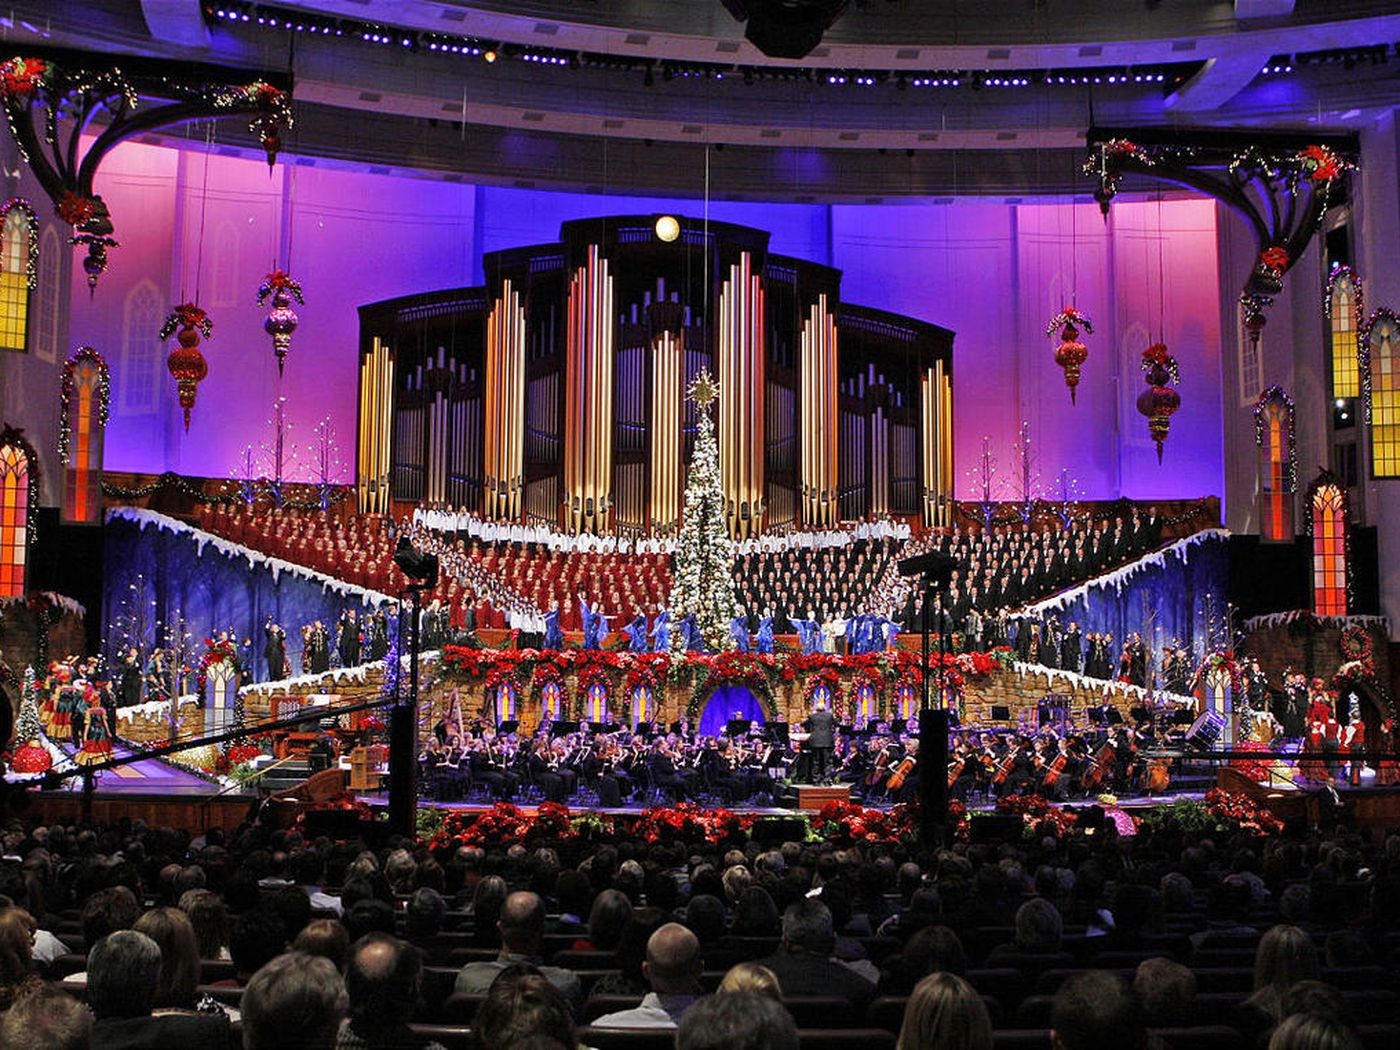 2021 Mormon Tabernacle Choir Christmas Concert The Tabernacle Choir Is Changing The Process For Getting Christmas Concert Tickets Here S How It Will Work Deseret News